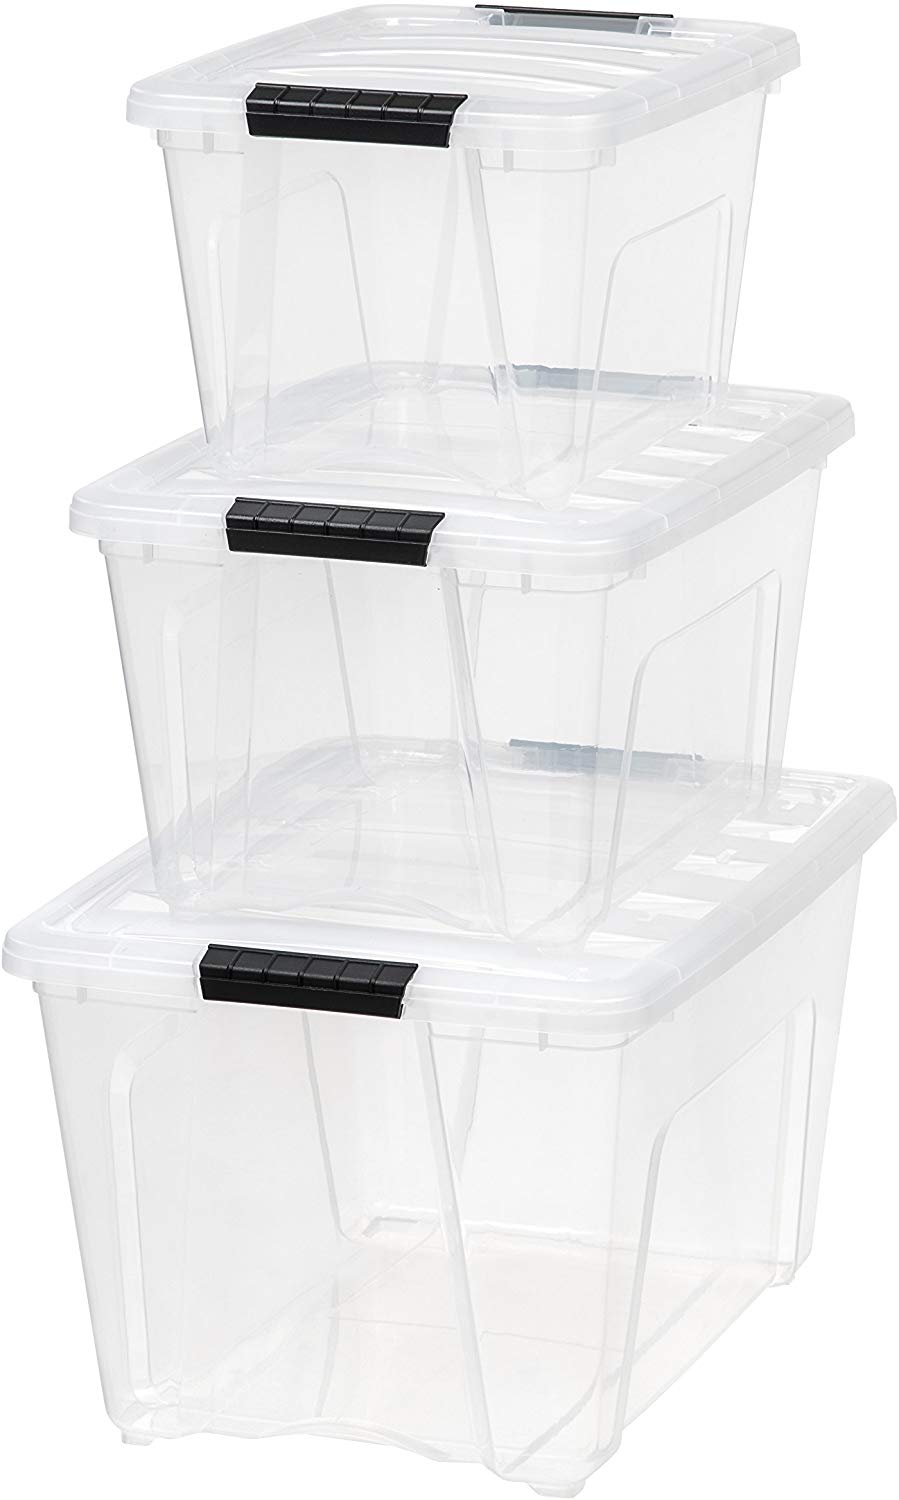 Clip-Lid Strong Boxes